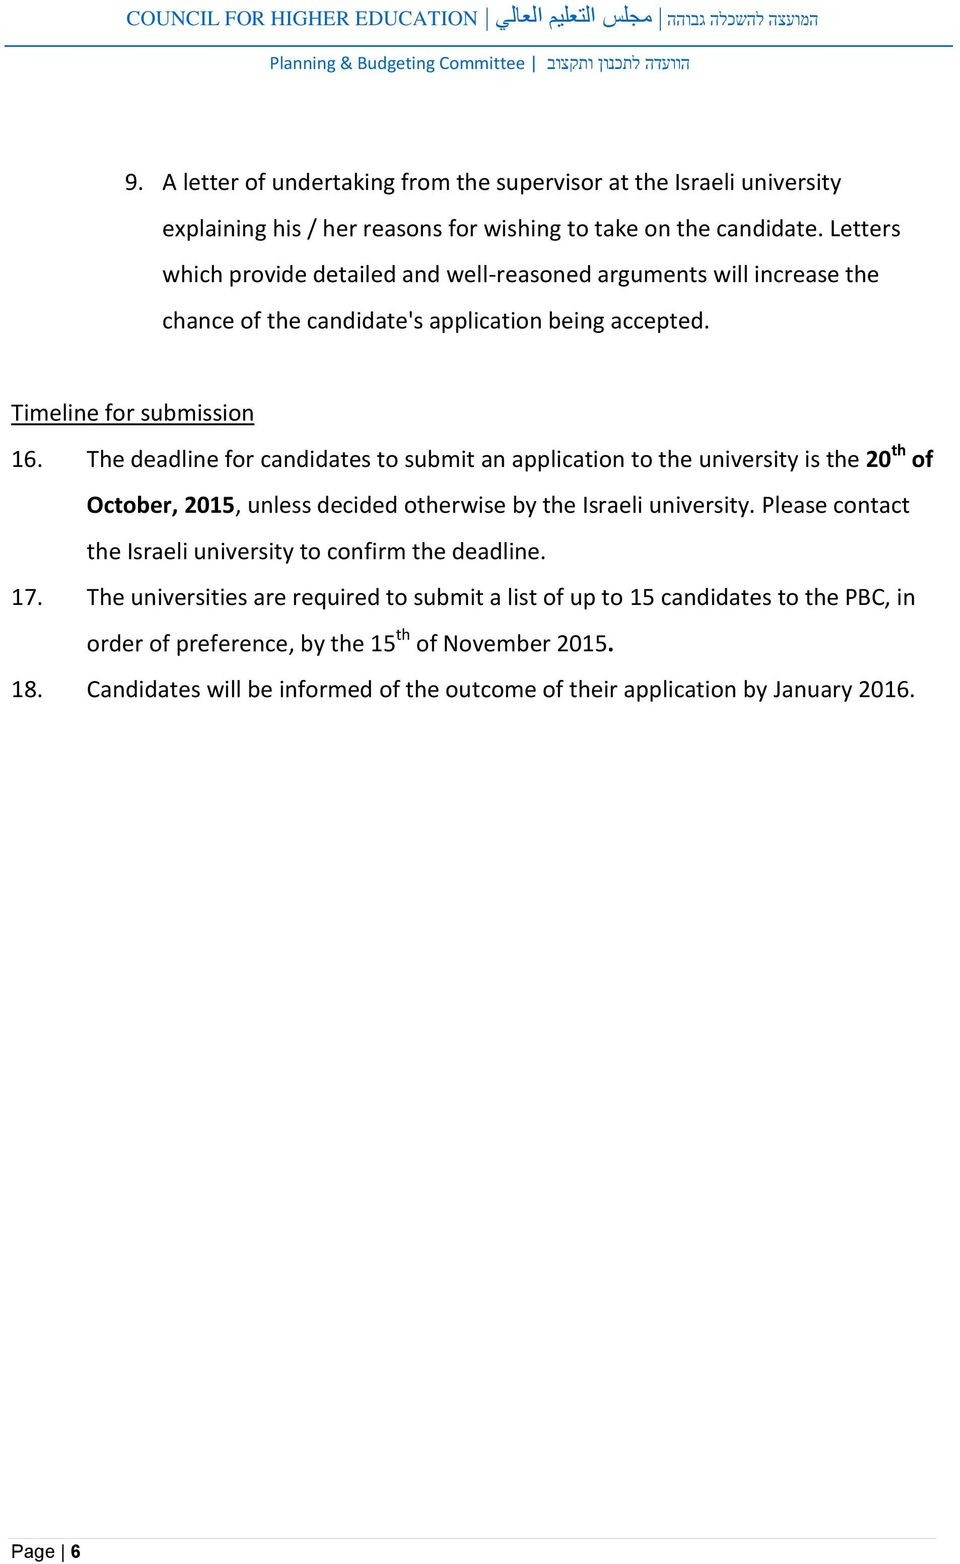 The deadline for candidates to submit an application to the university is the 20 th of October, 2015, unless decided otherwise by the Israeli university.